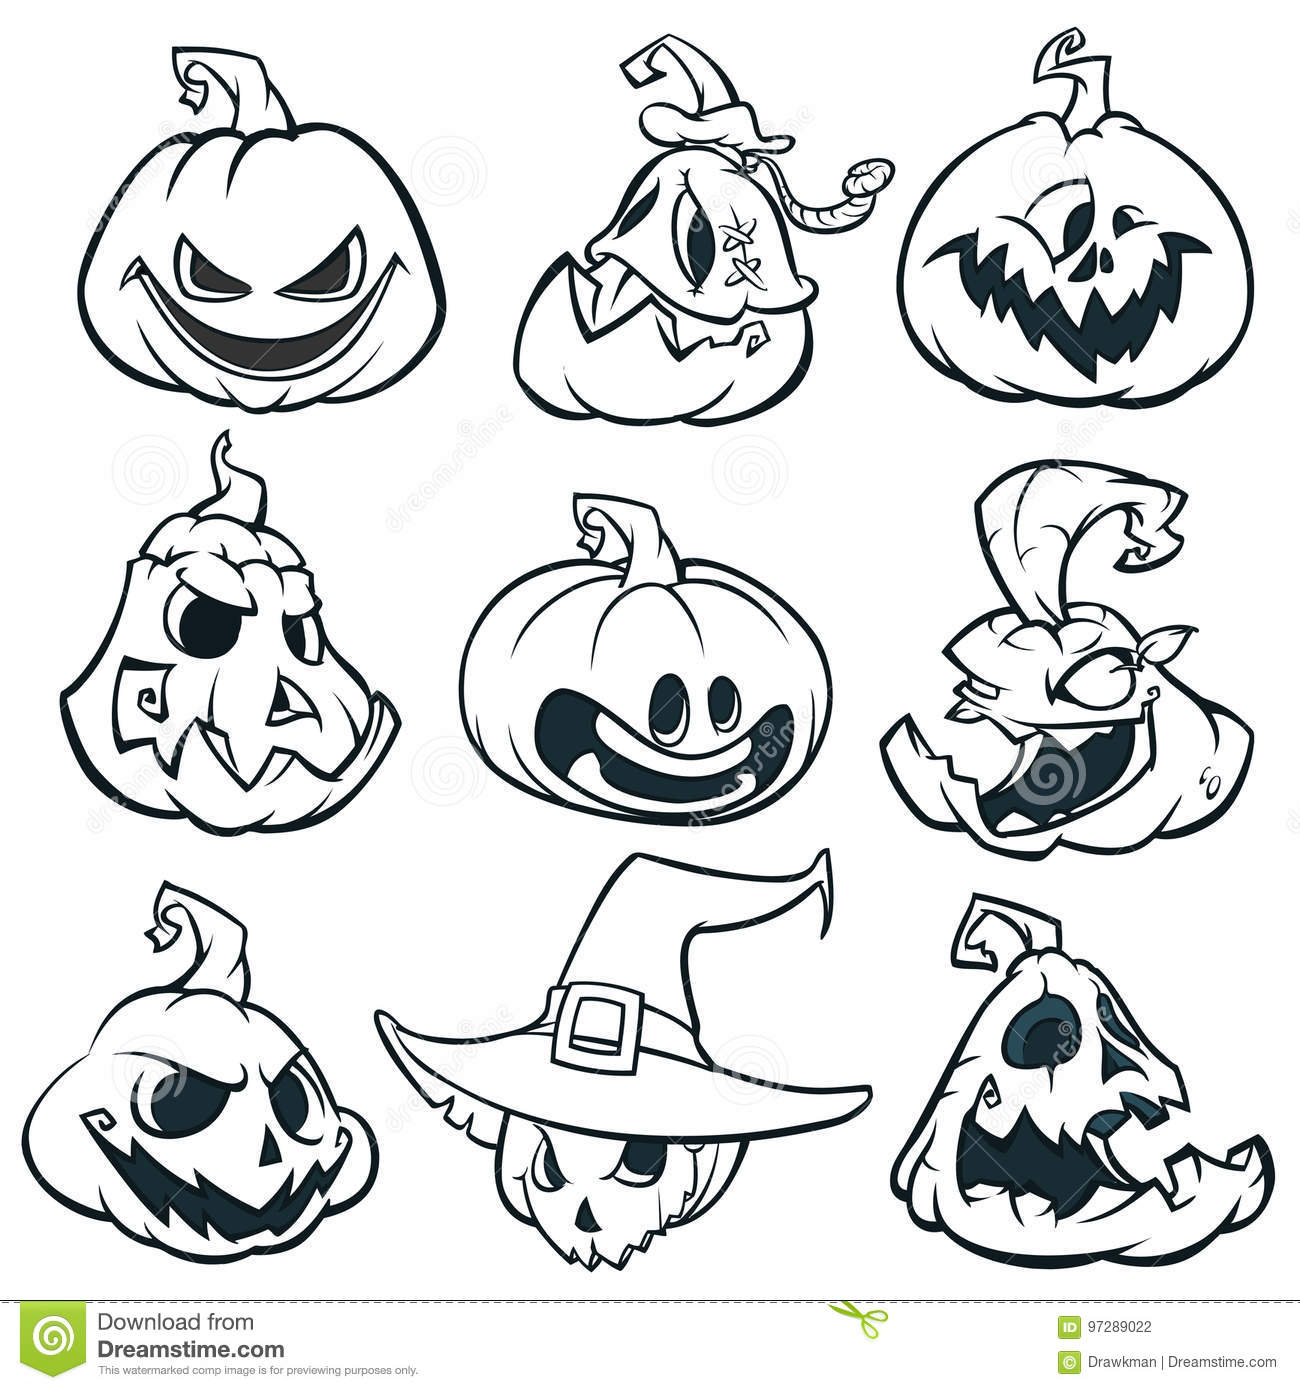 Cartoon Spooky Jack O Lantern Pumpkins Set Outlined